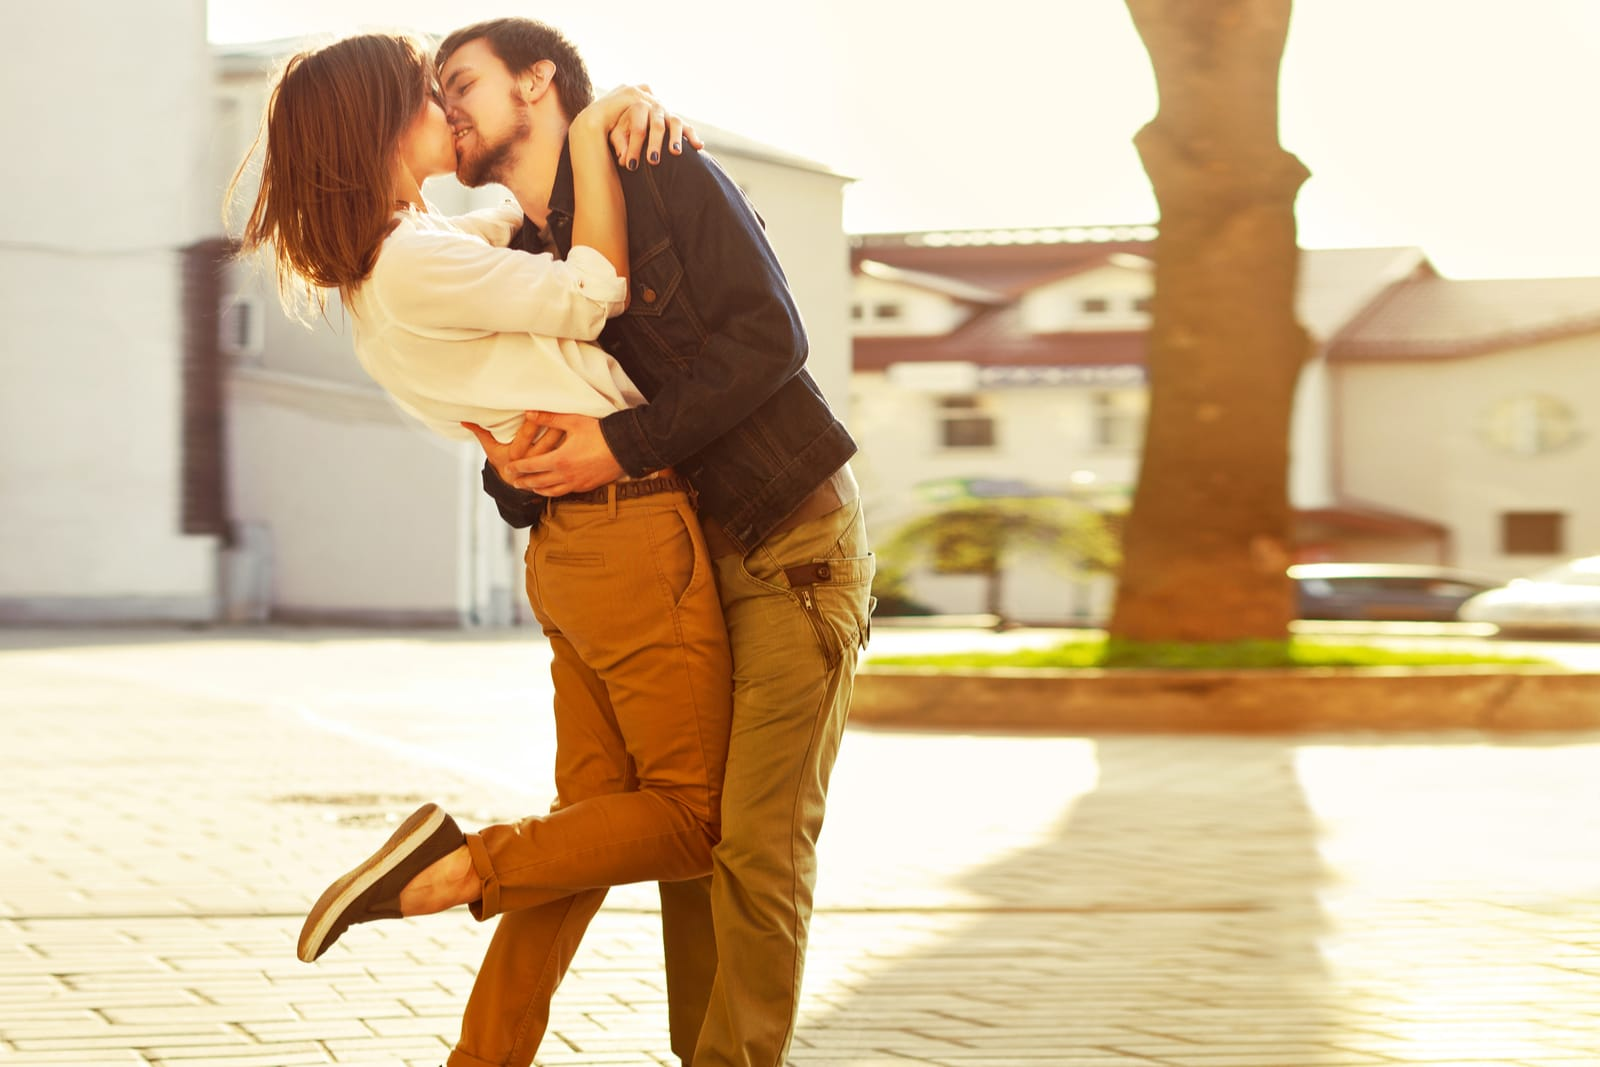 5 Power Moves A Woman Should Pull If She Wants A Real Relationship